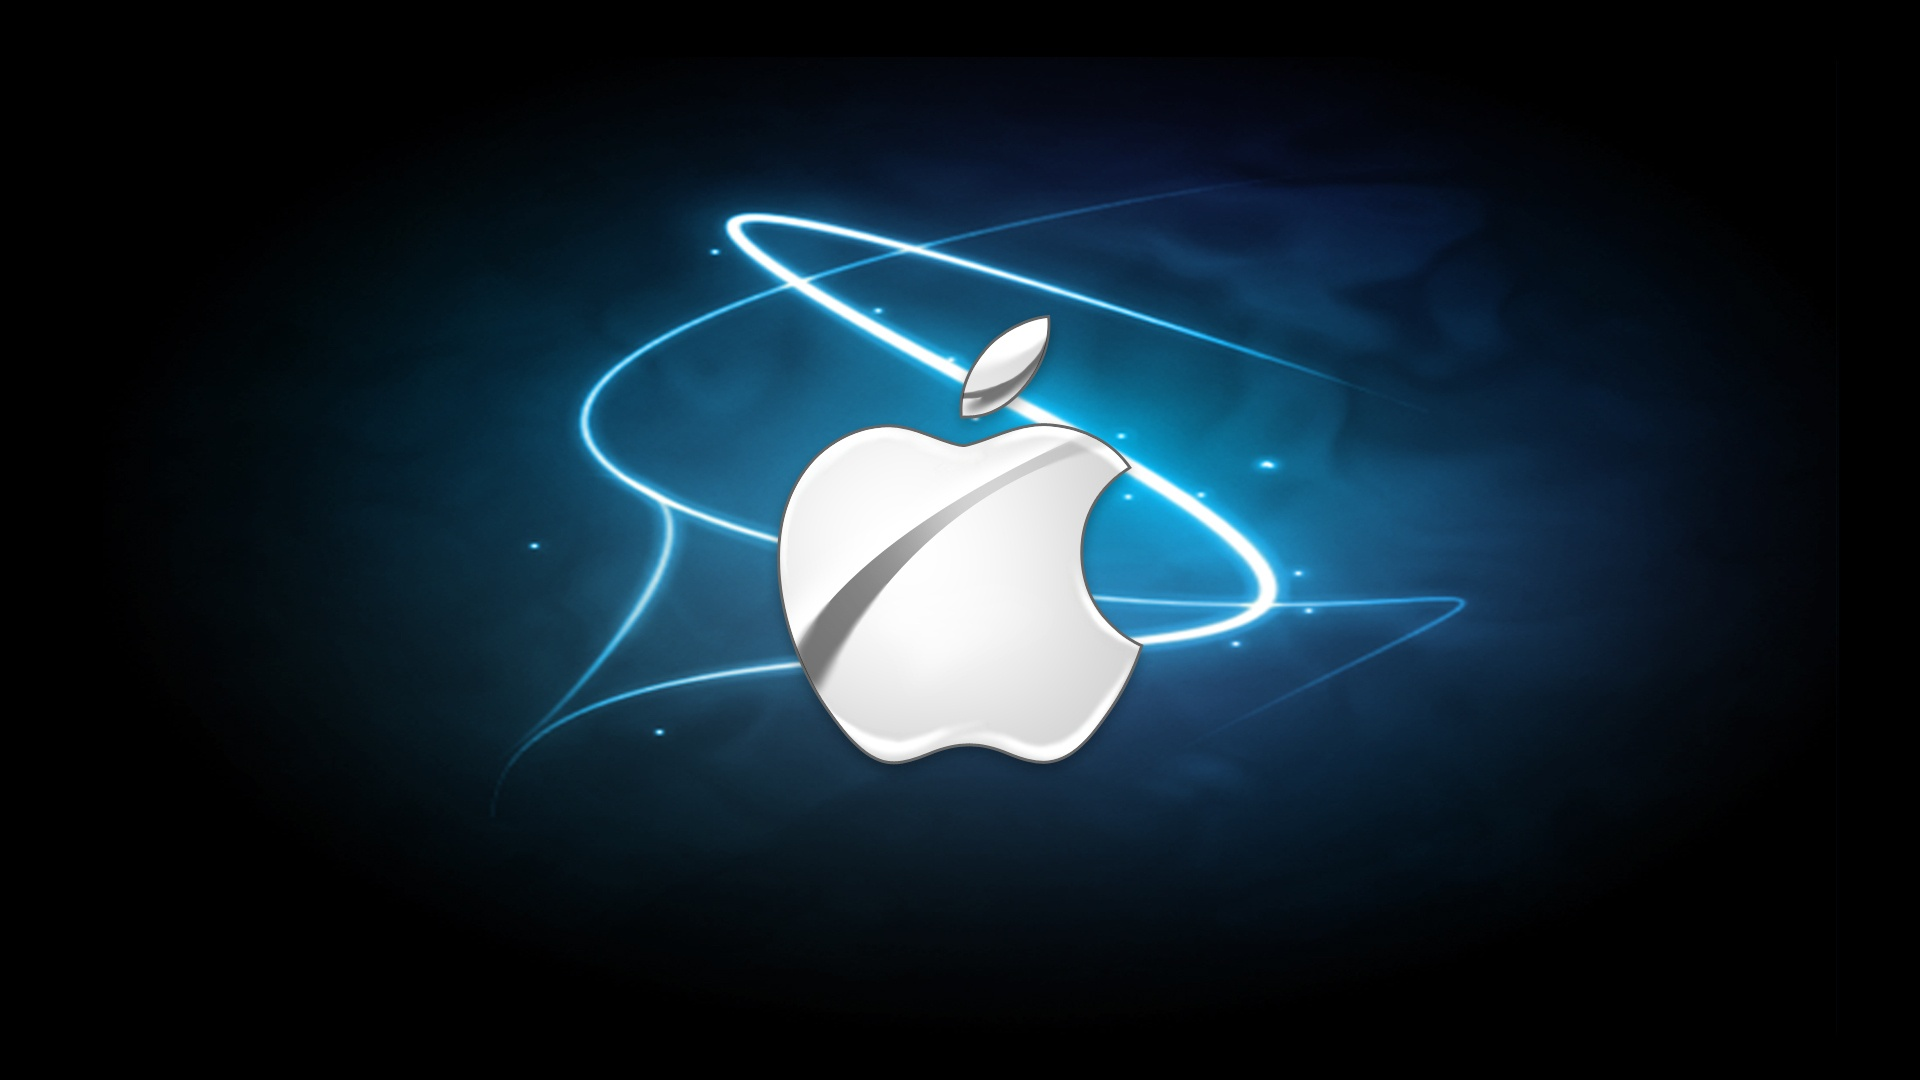 Free Download Hd Apple Logo Hd Wallpaper Share This Awesome